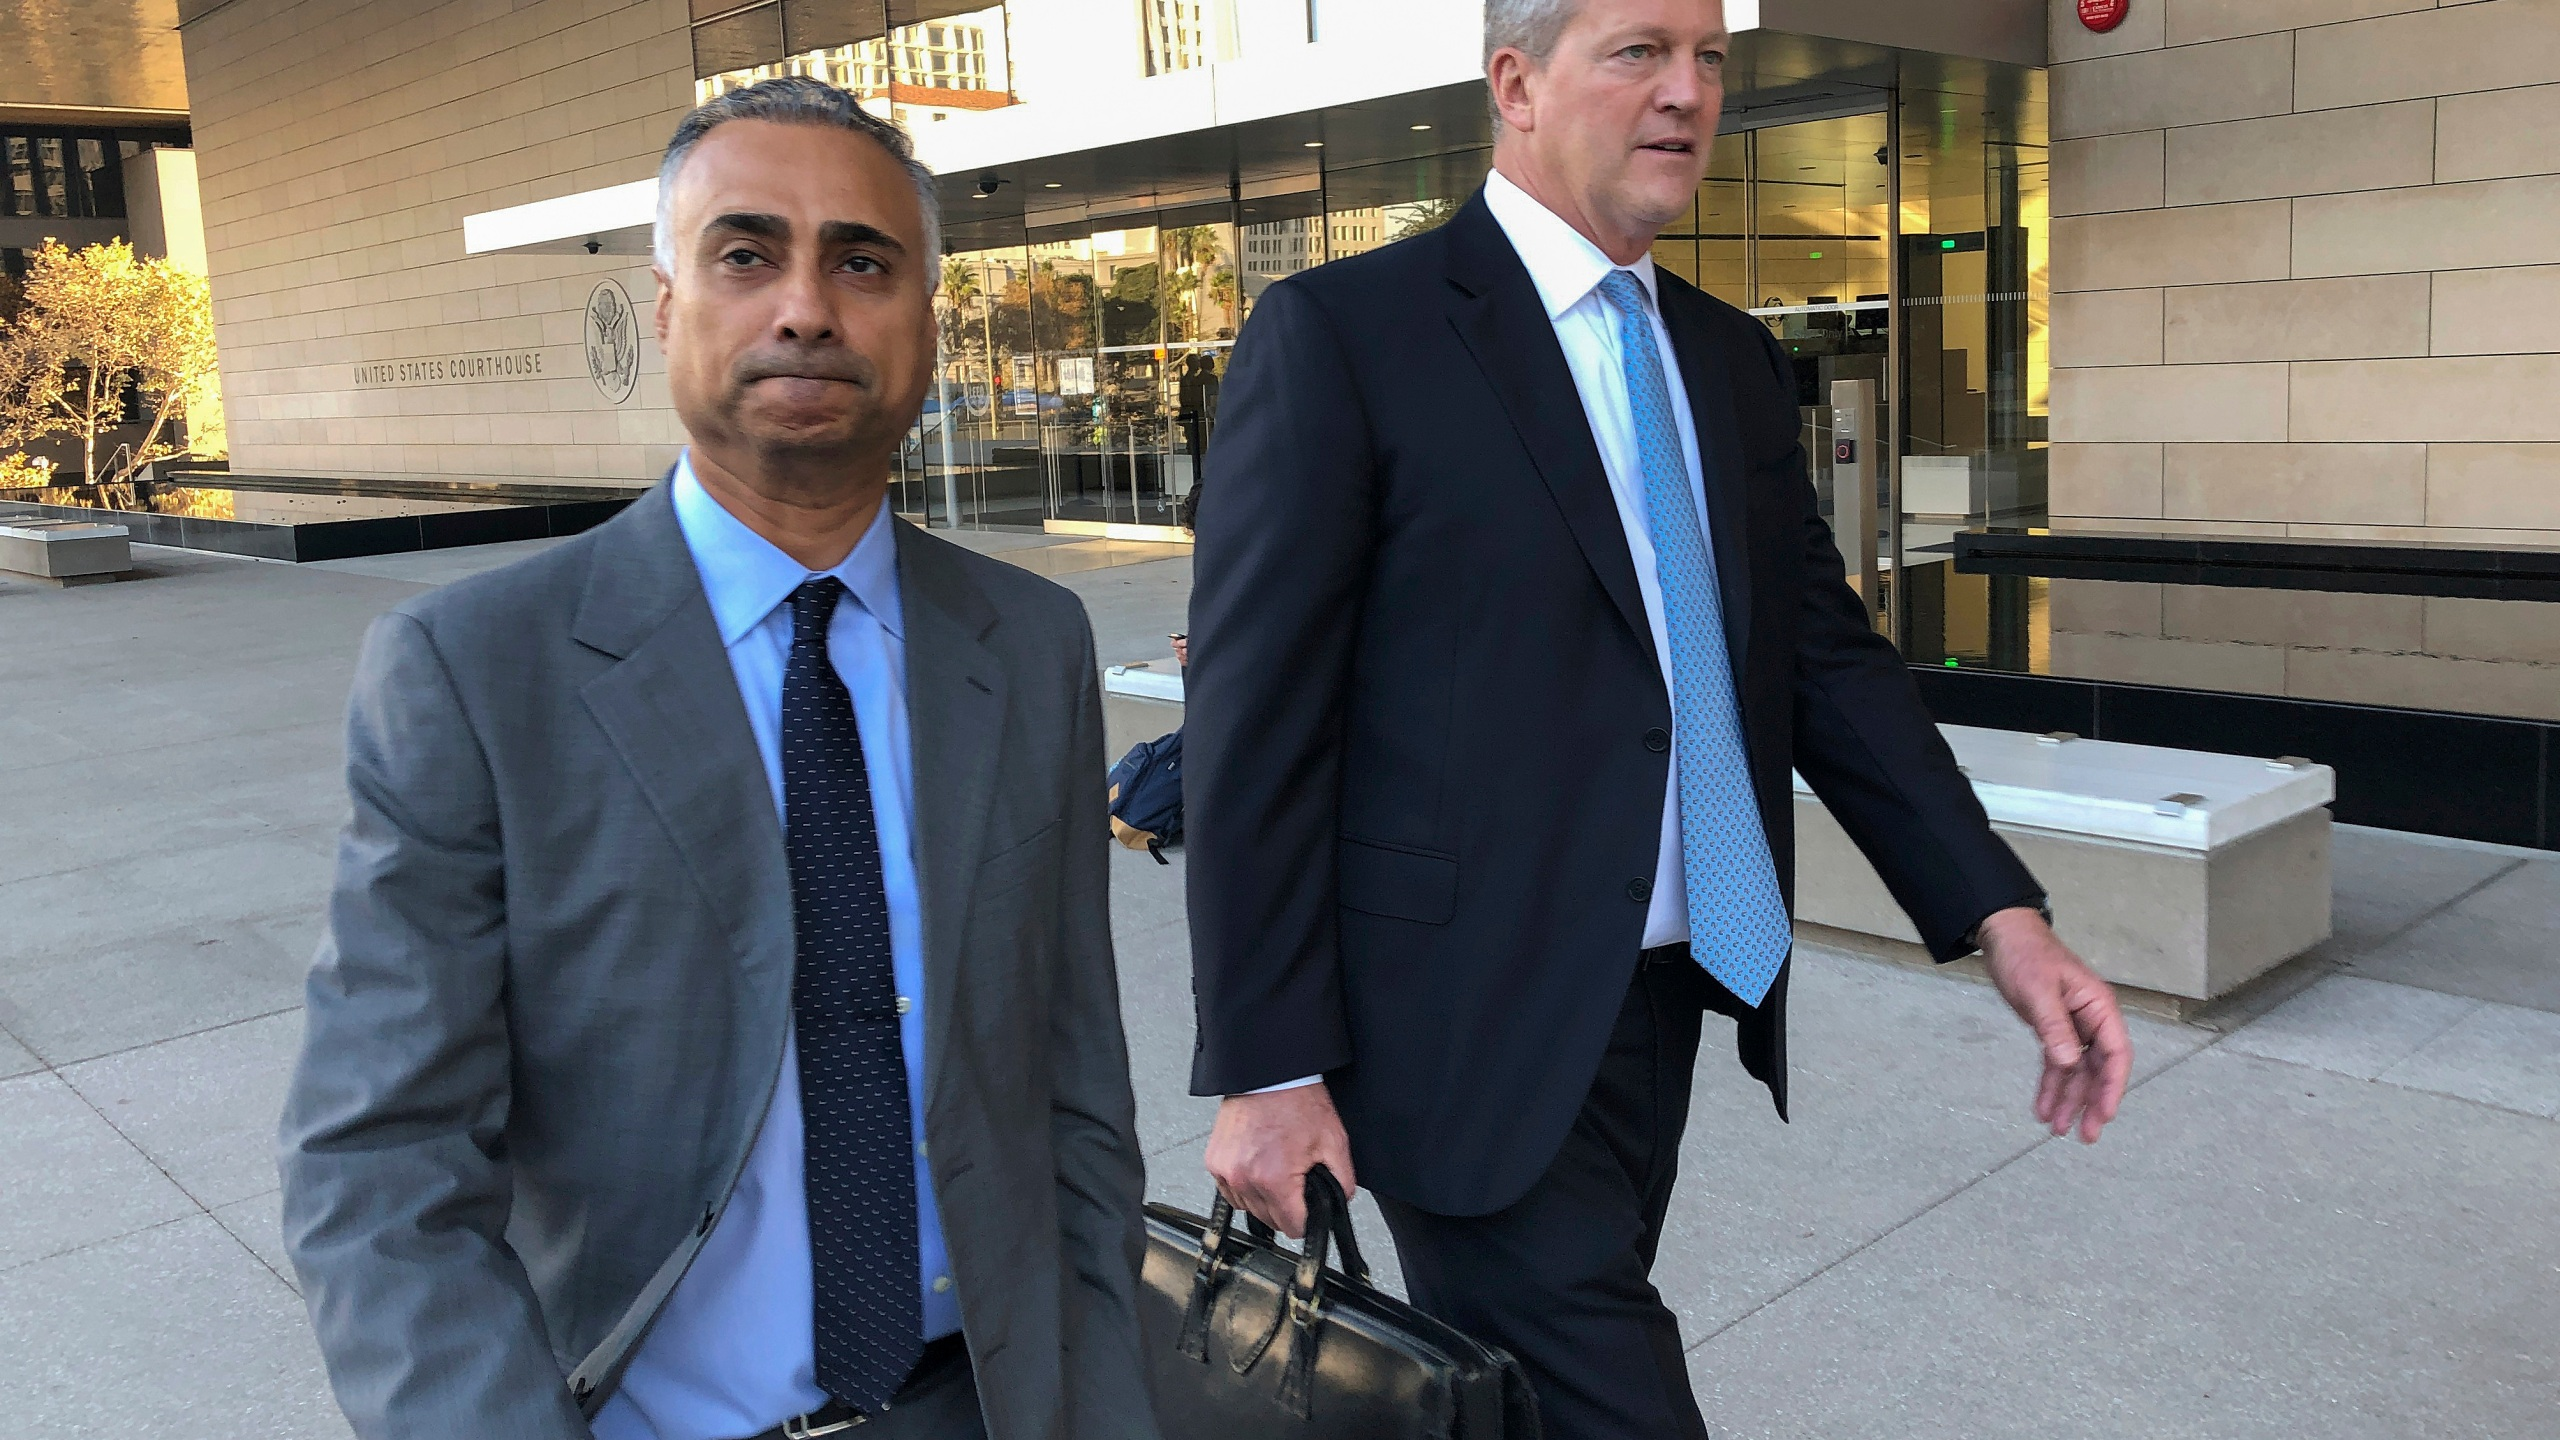 Imaad Zuberi, left, leaves the federal courthouse in Los Angeles with his attorney Thomas O'Brien, right, on Nov. 22, 2019. (Brian Melley / Associated Press)